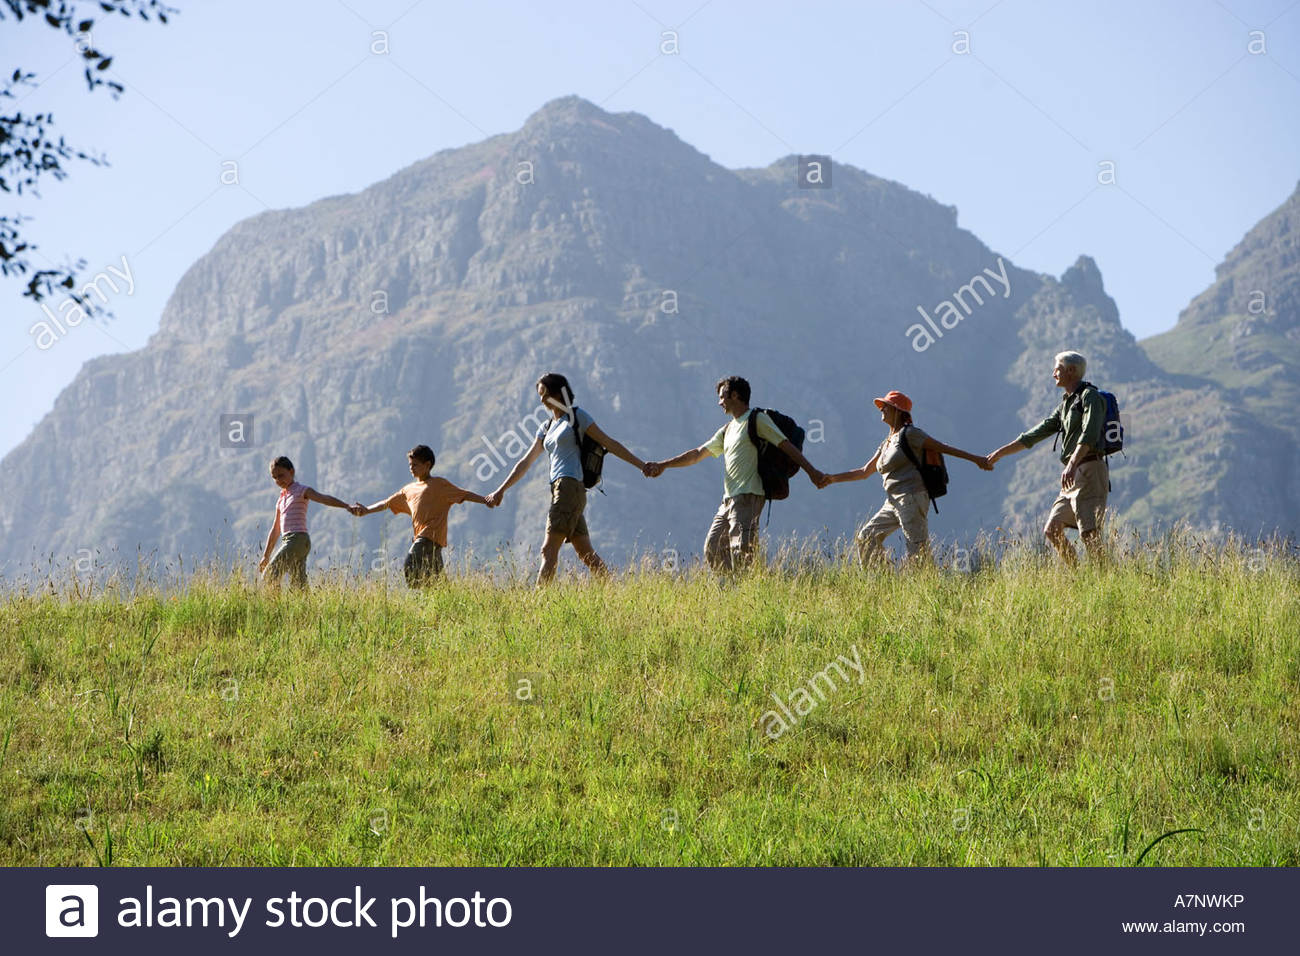 Multi generational family hiking on mountain trail walking in line all holding hands side view - Stock Image